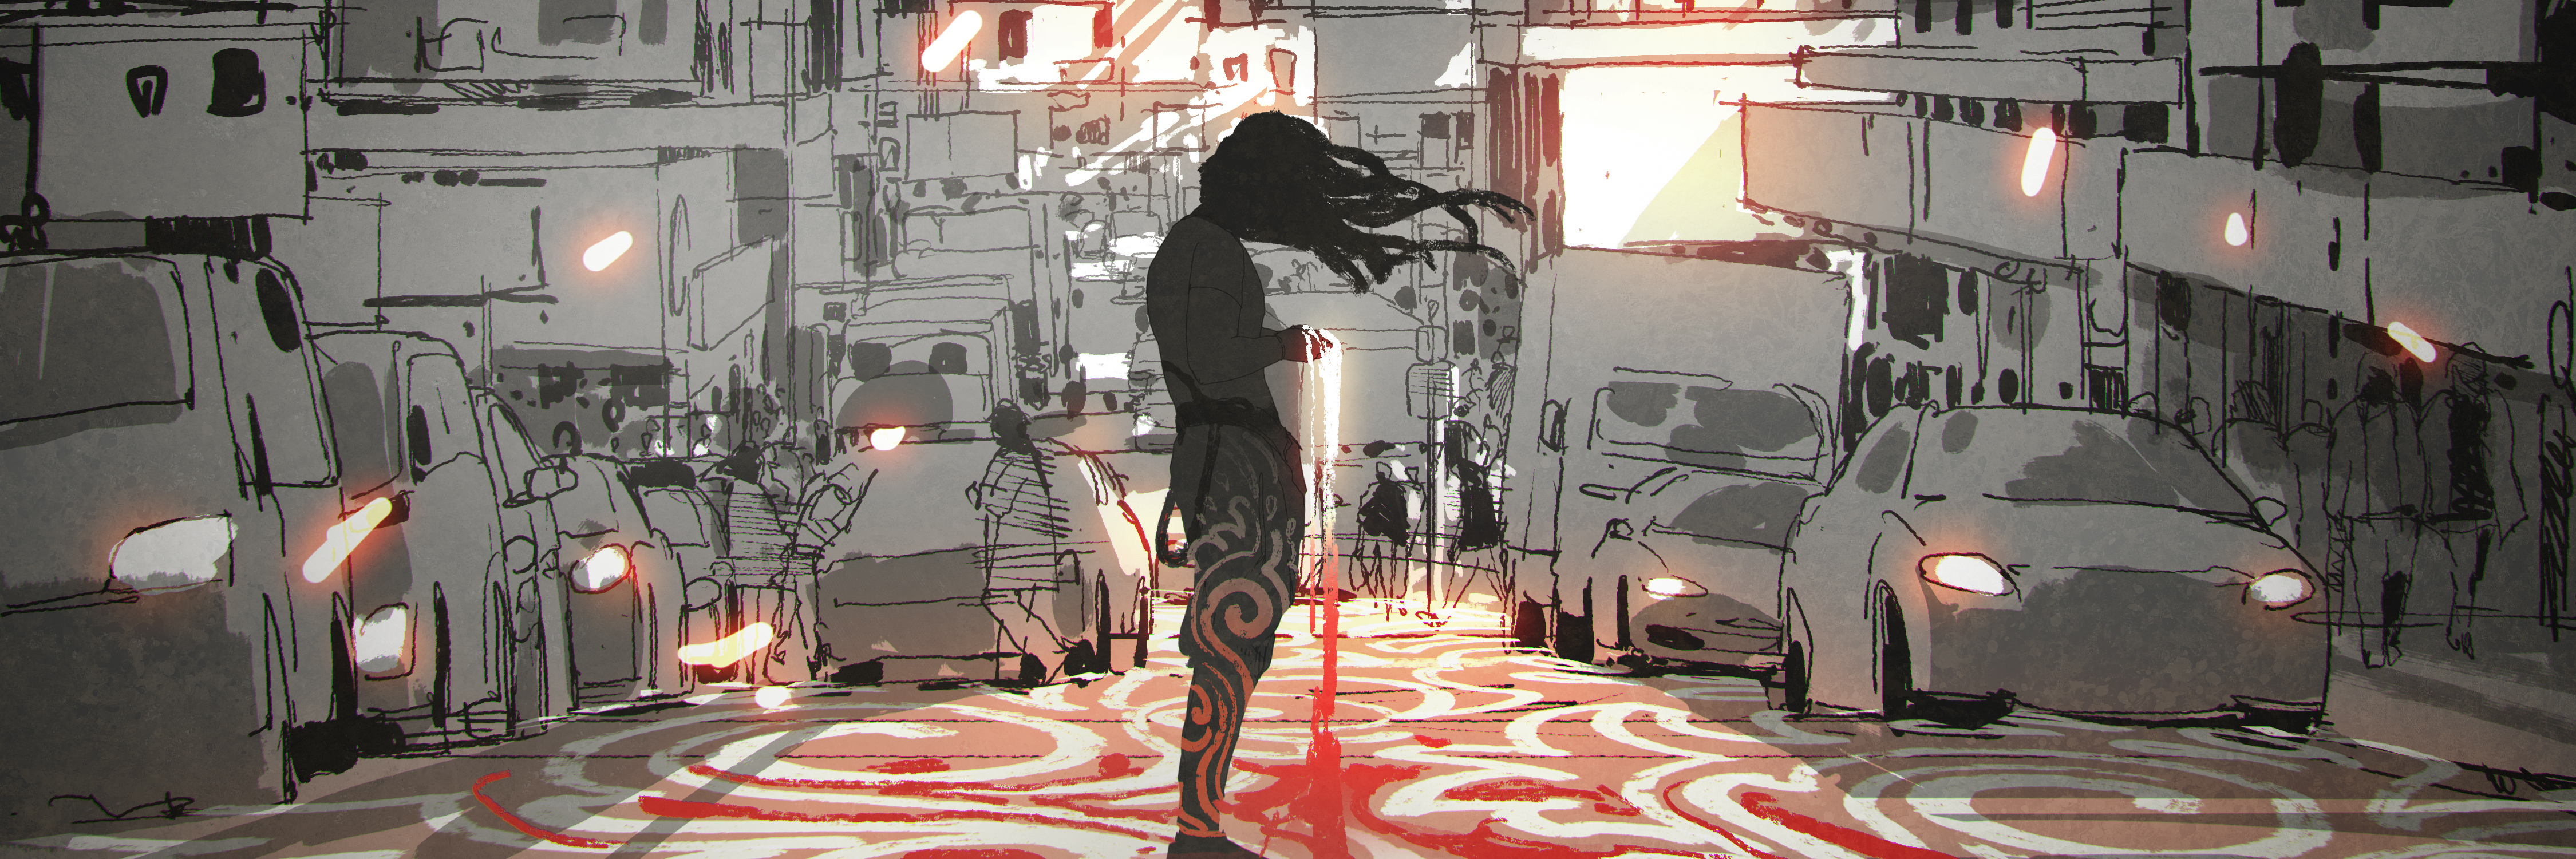 man with long hair standing in city with graphic pattern on street, digital art style, illustration painting